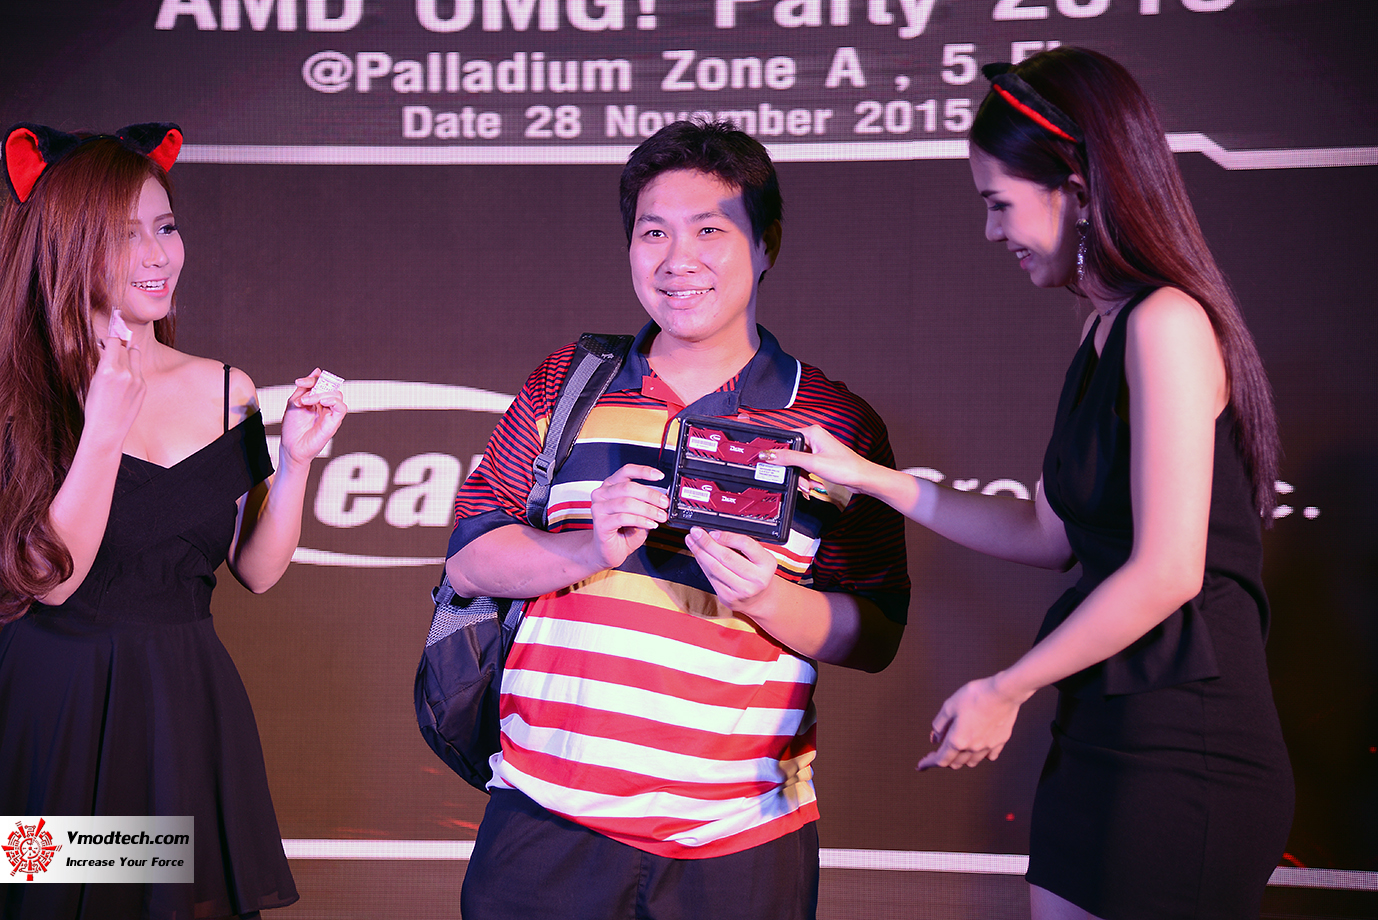 dsc 6960 AMD OMG! Party 2015 (AMD Overclock Modding Gaming Party 2015)